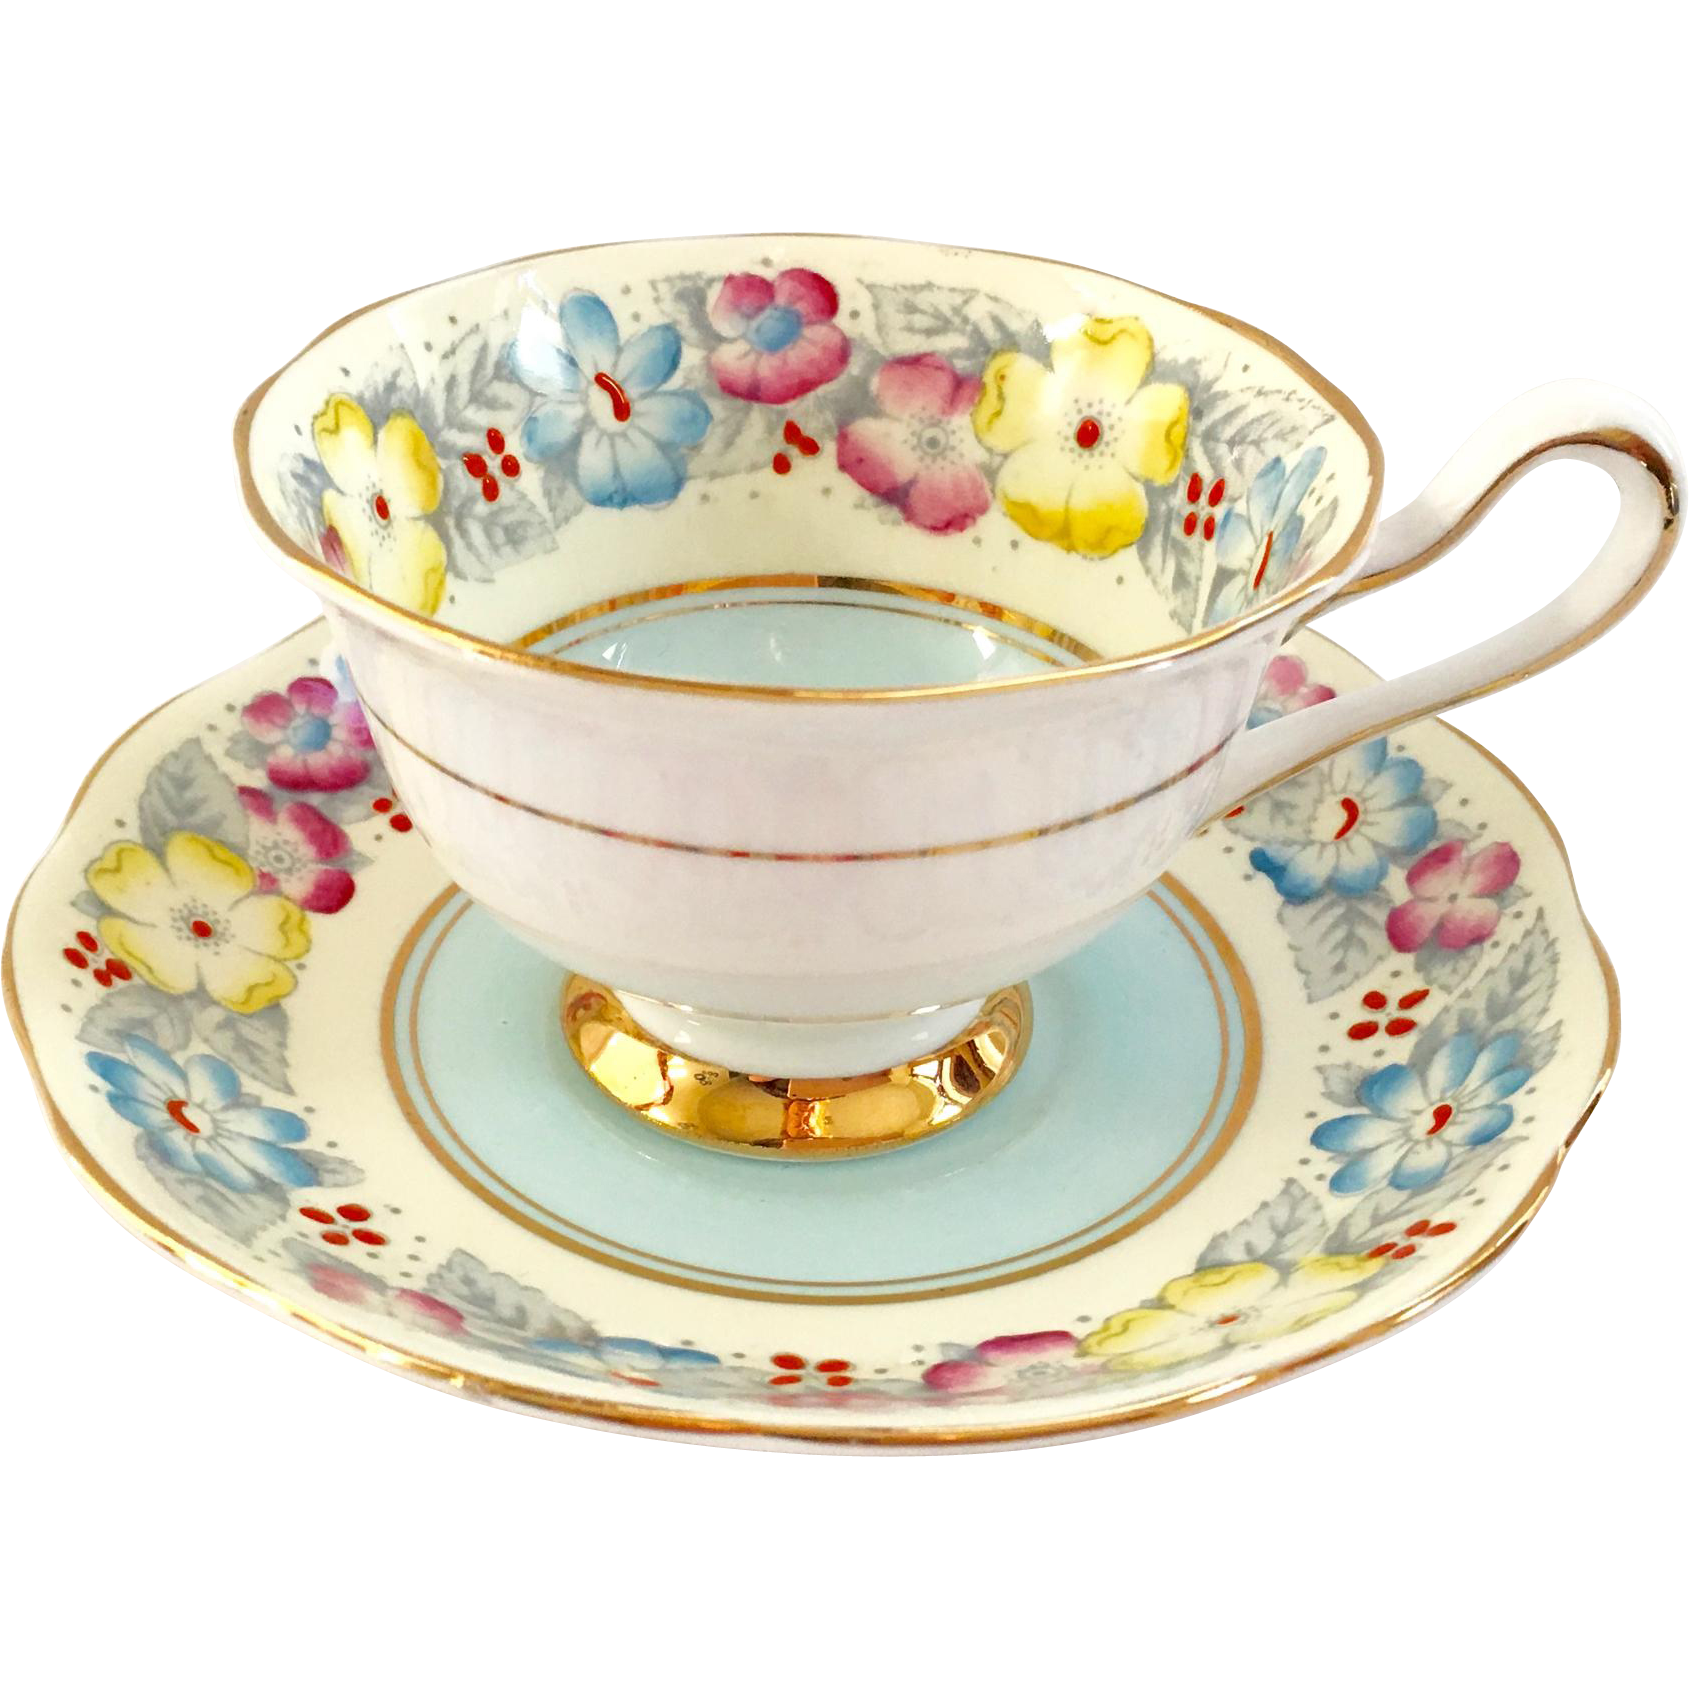 Royal albert bone china tea cup amp saucer winsome pattern ebay - This Lovely Royal Albert Bone China Teacup And Saucer Is In The Blue Variation Of The